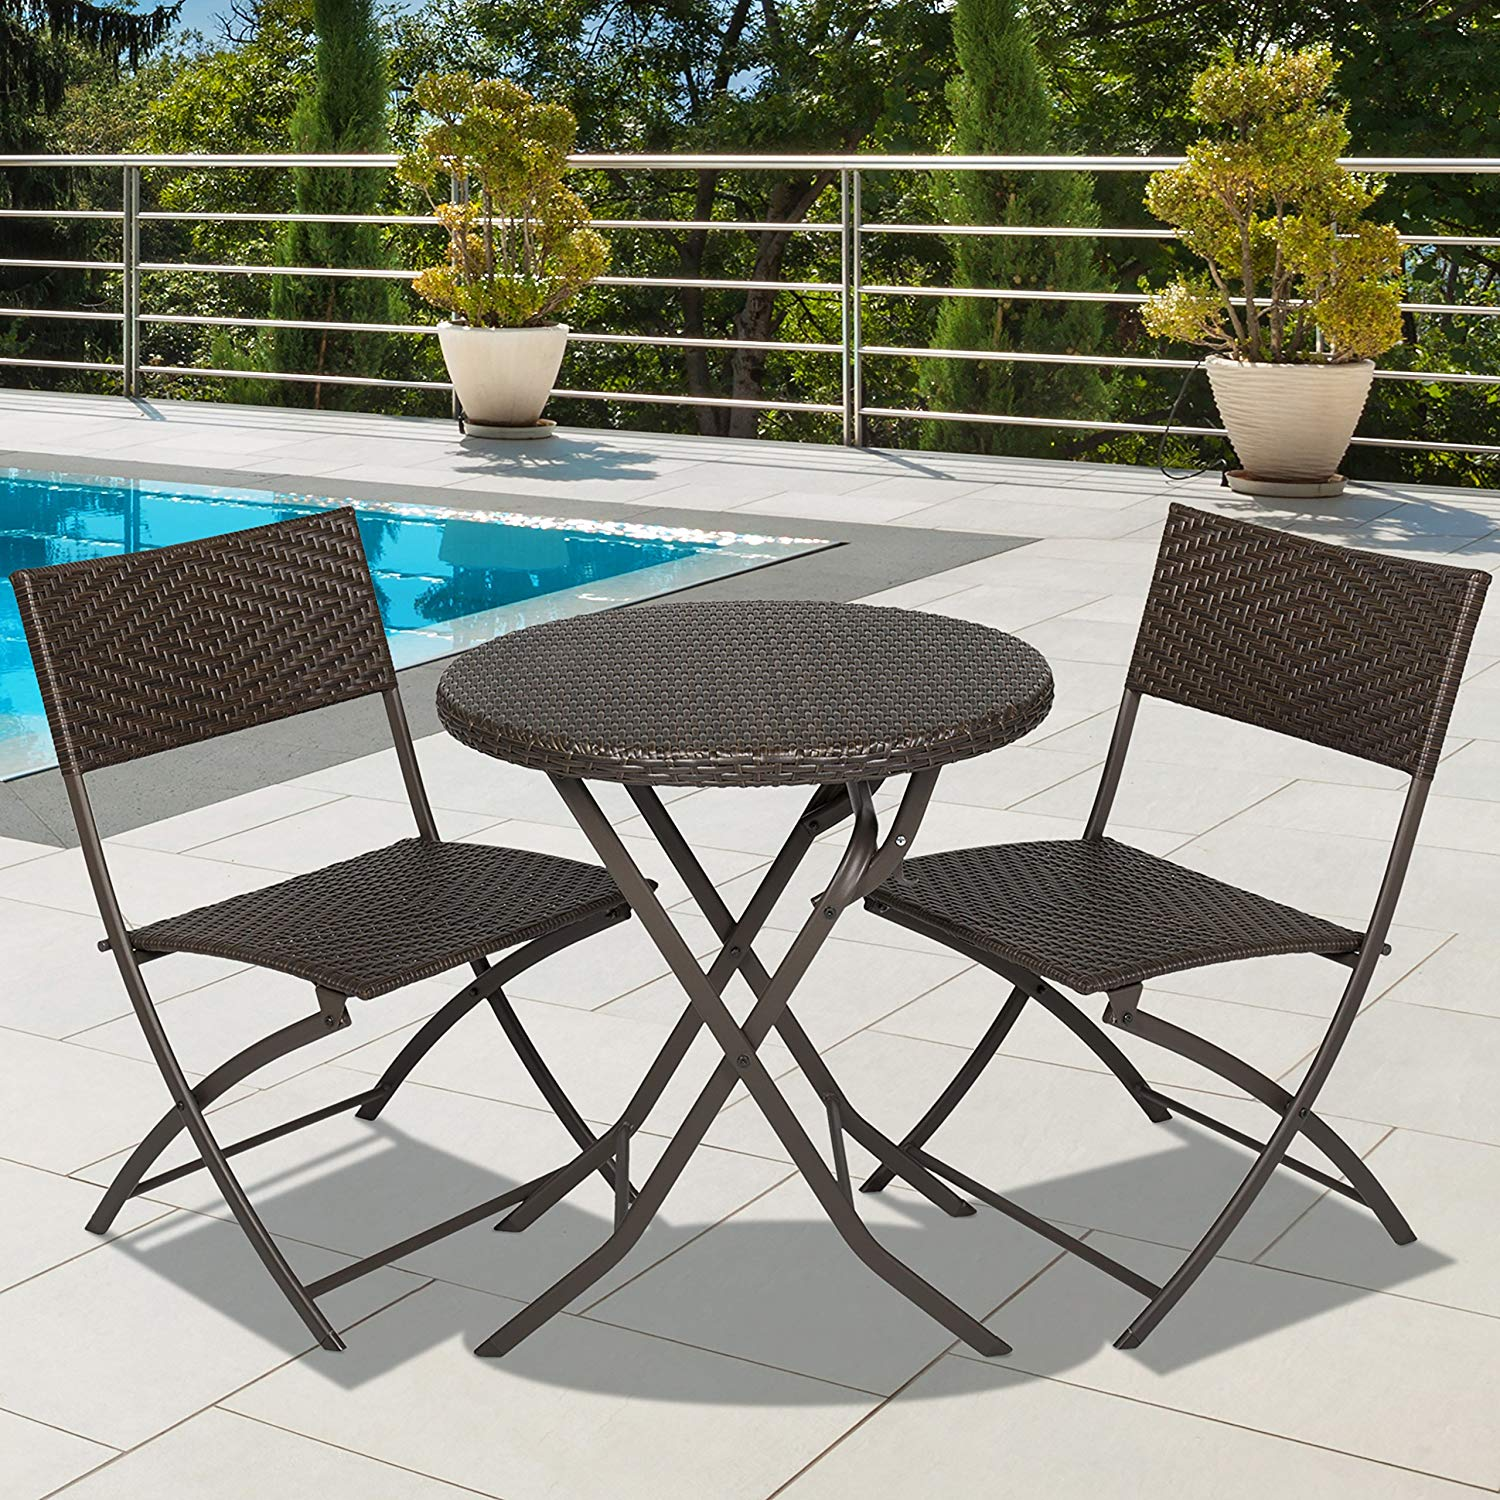 3-Piece Outdoor Patio Folding Rattan Hand Woven Bistro Set Furniture w/ Table, 2 Chairs - Brown, Elegant Bistro Set is Constructed From PE Resin Wicker and a Powder-Coated Aluminum Frame